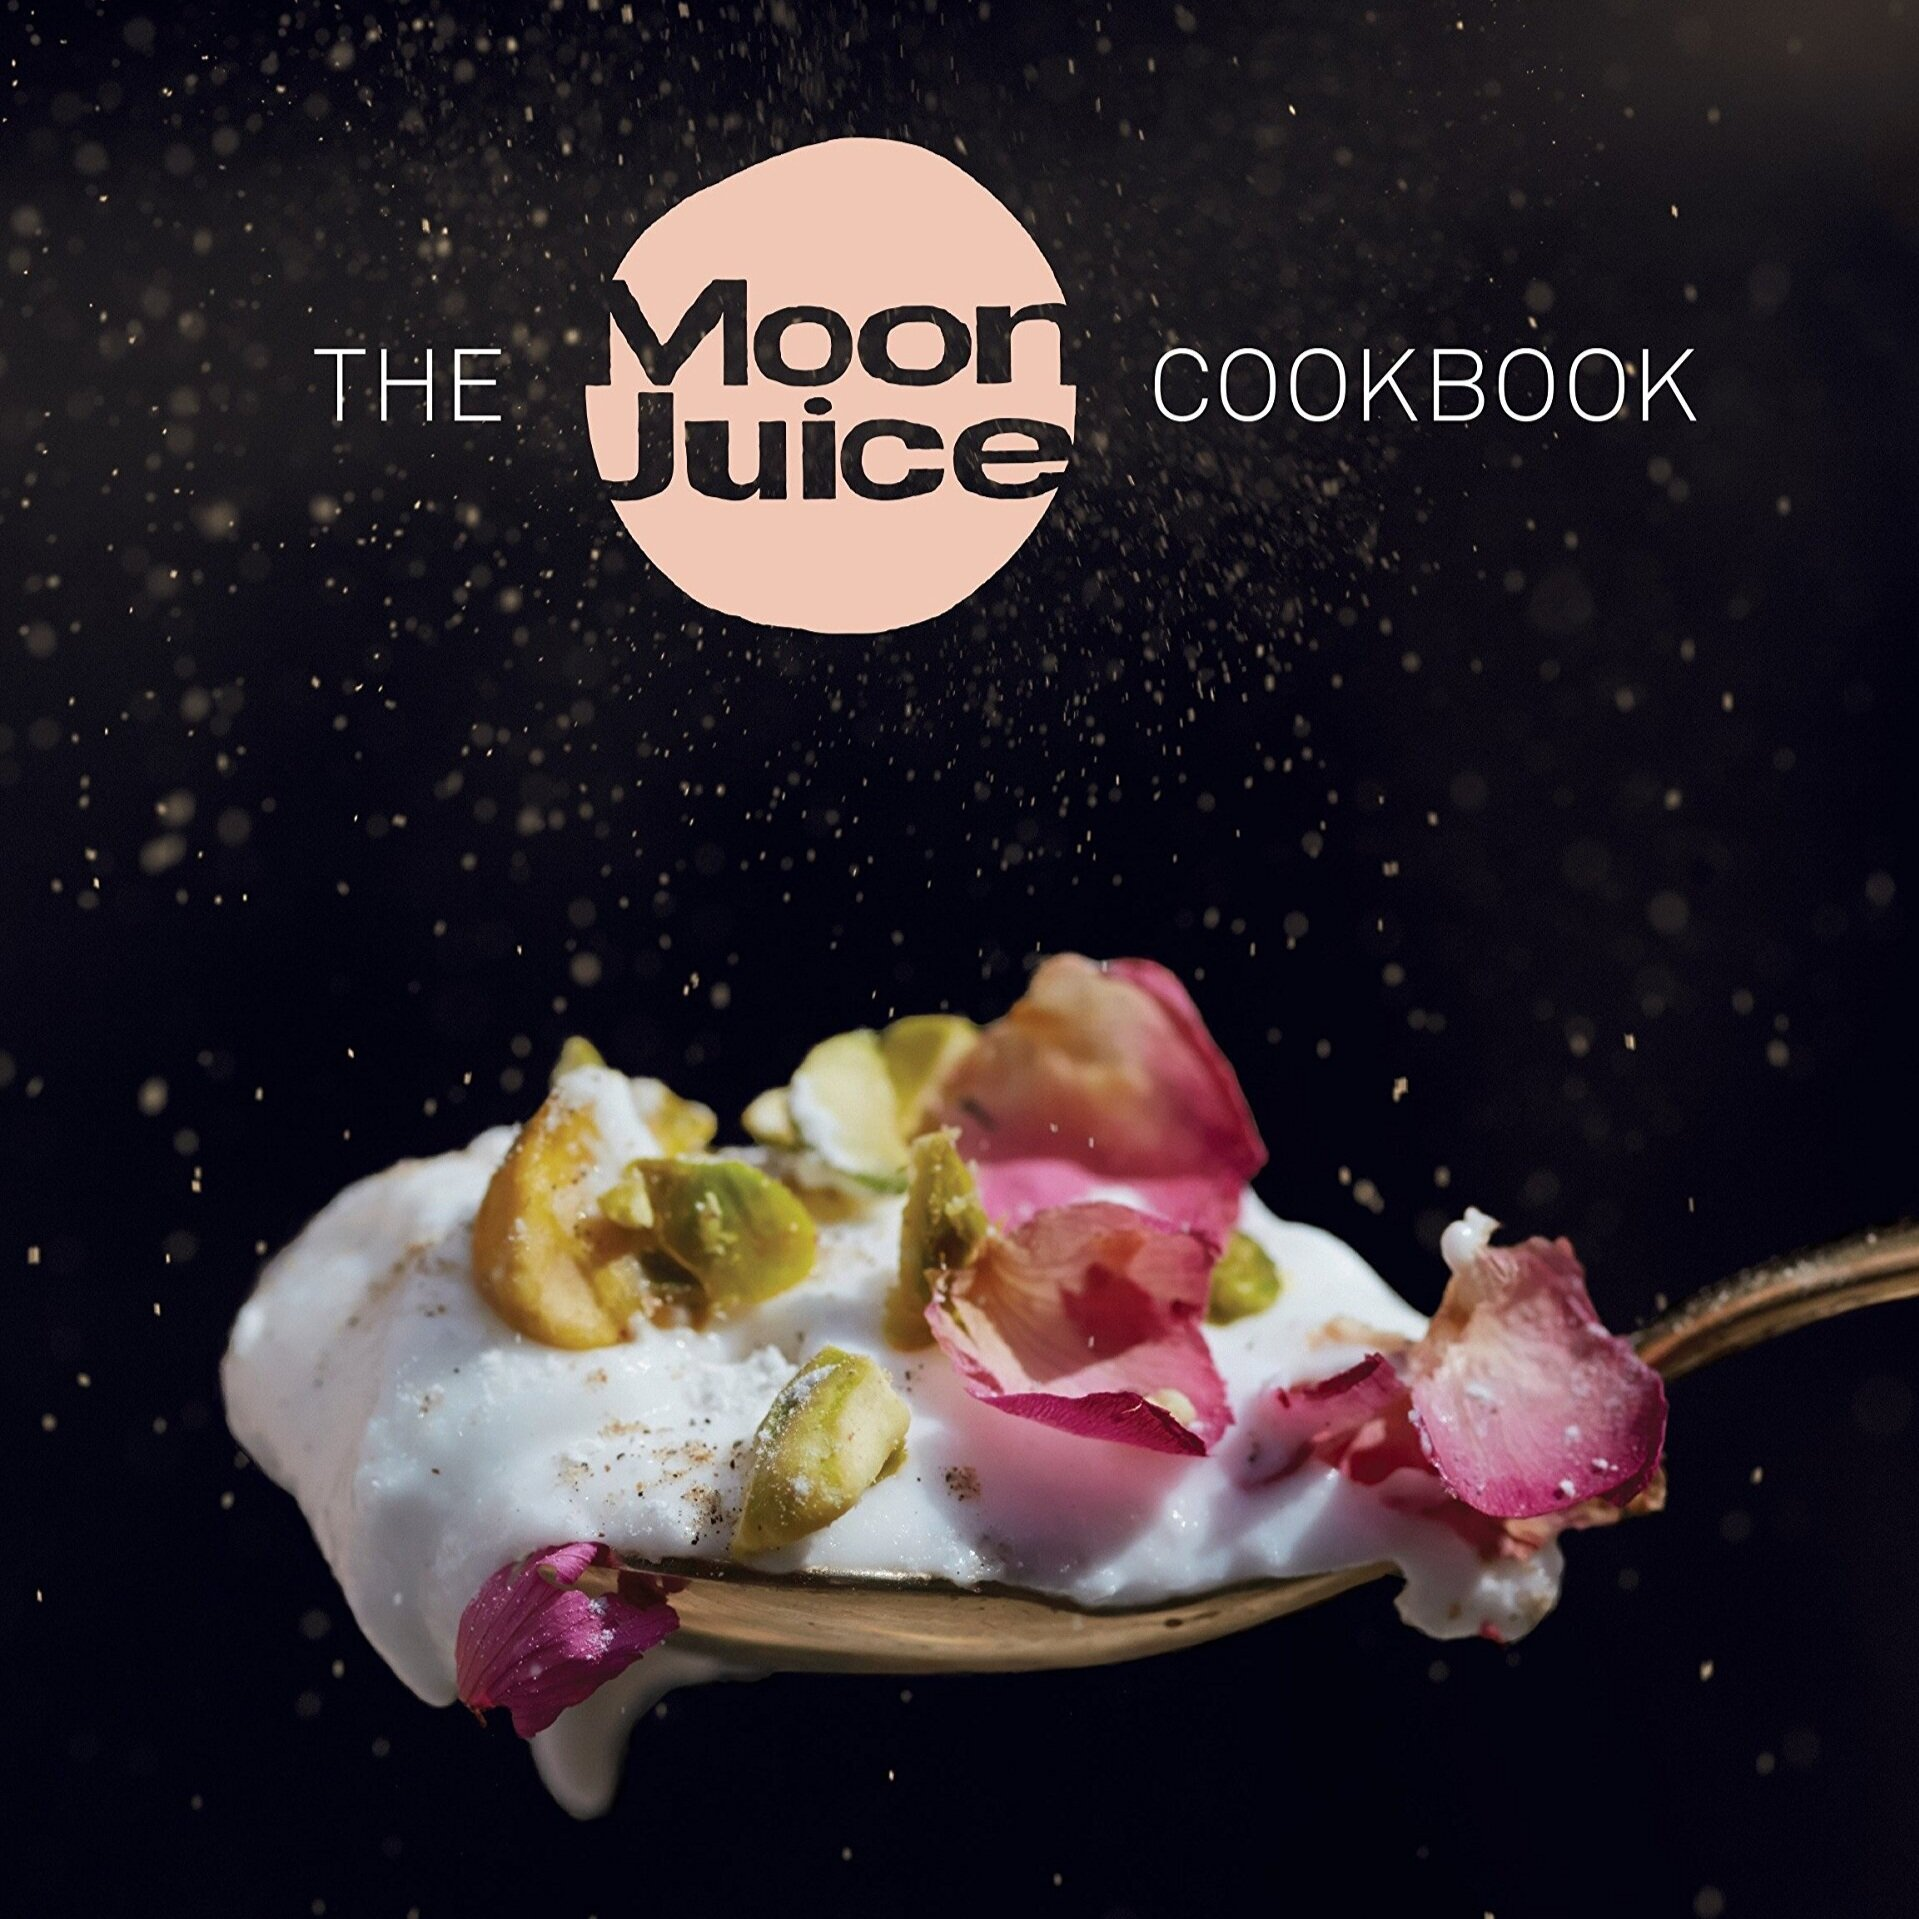 Moon Juice Cookbook - A great resource for learning about nut mylks & adaptogens.